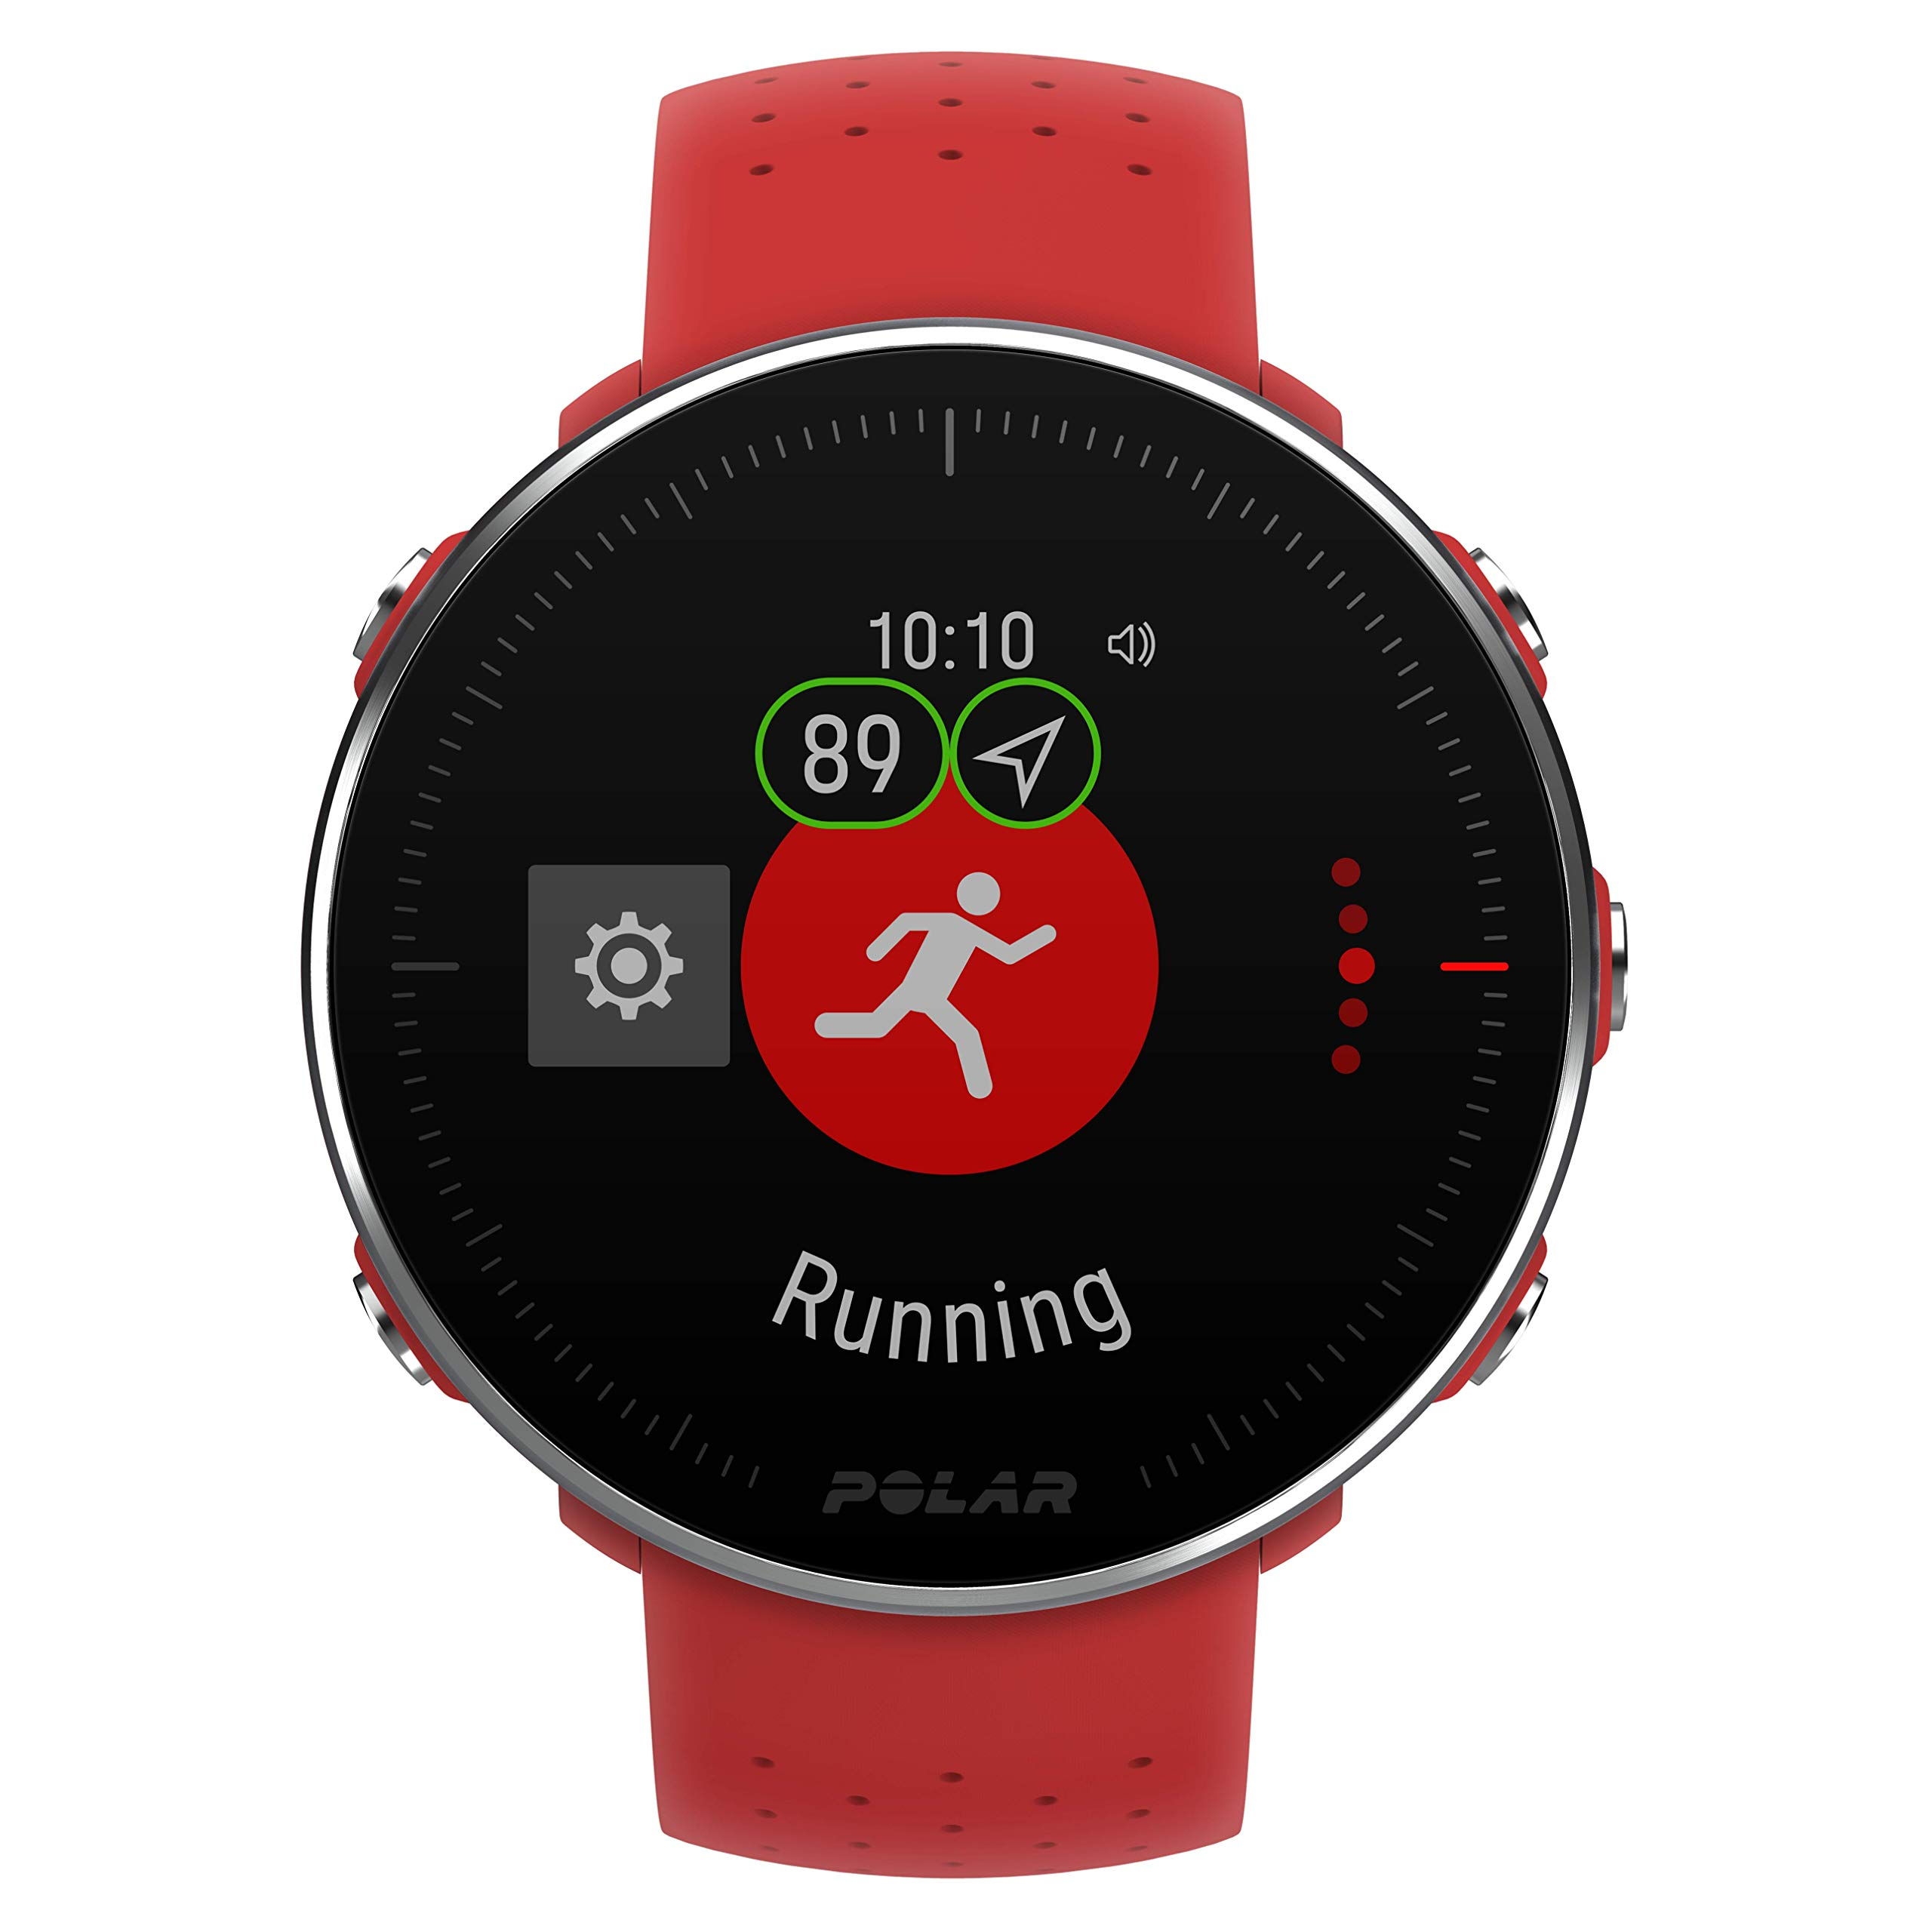 POLAR VANTAGE M –Advanced Running & Multisport Watch with GPS and Wrist-based Heart Rate (Lightweight Design & Latest Technology, Red, M-L by Polar (Image #8)